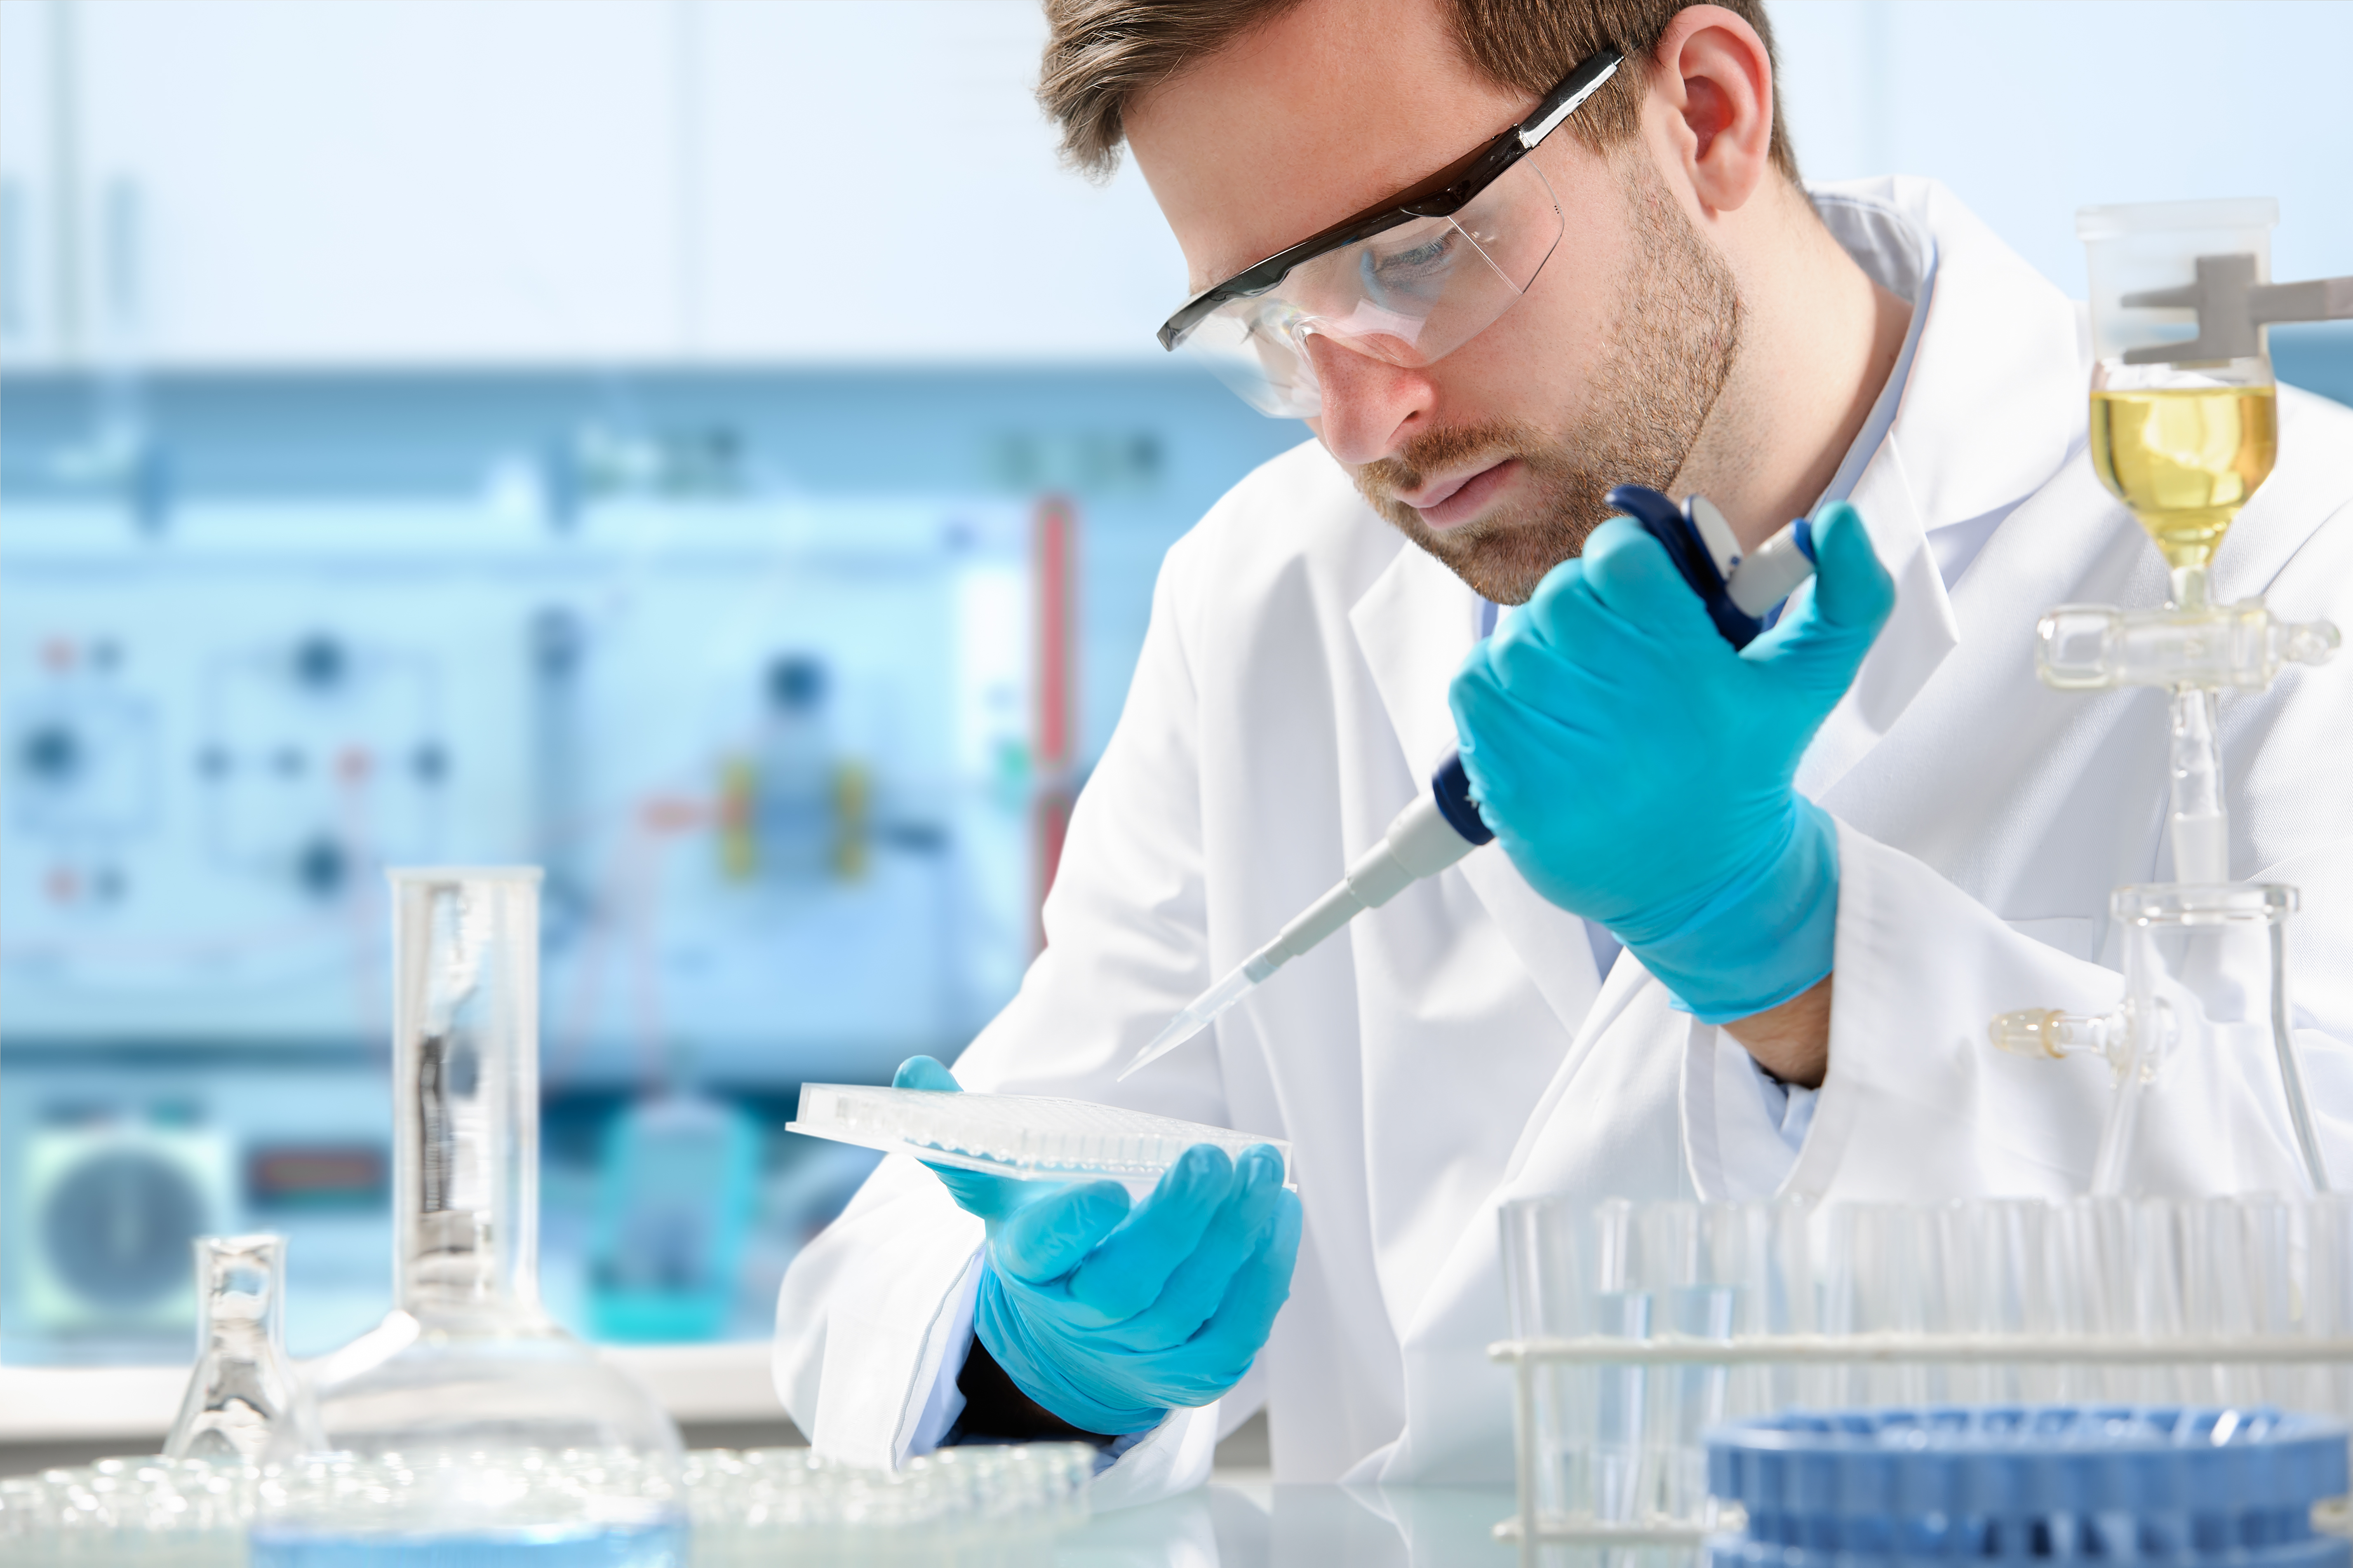 bigstock-scientist-working-at-the-labor-85364729